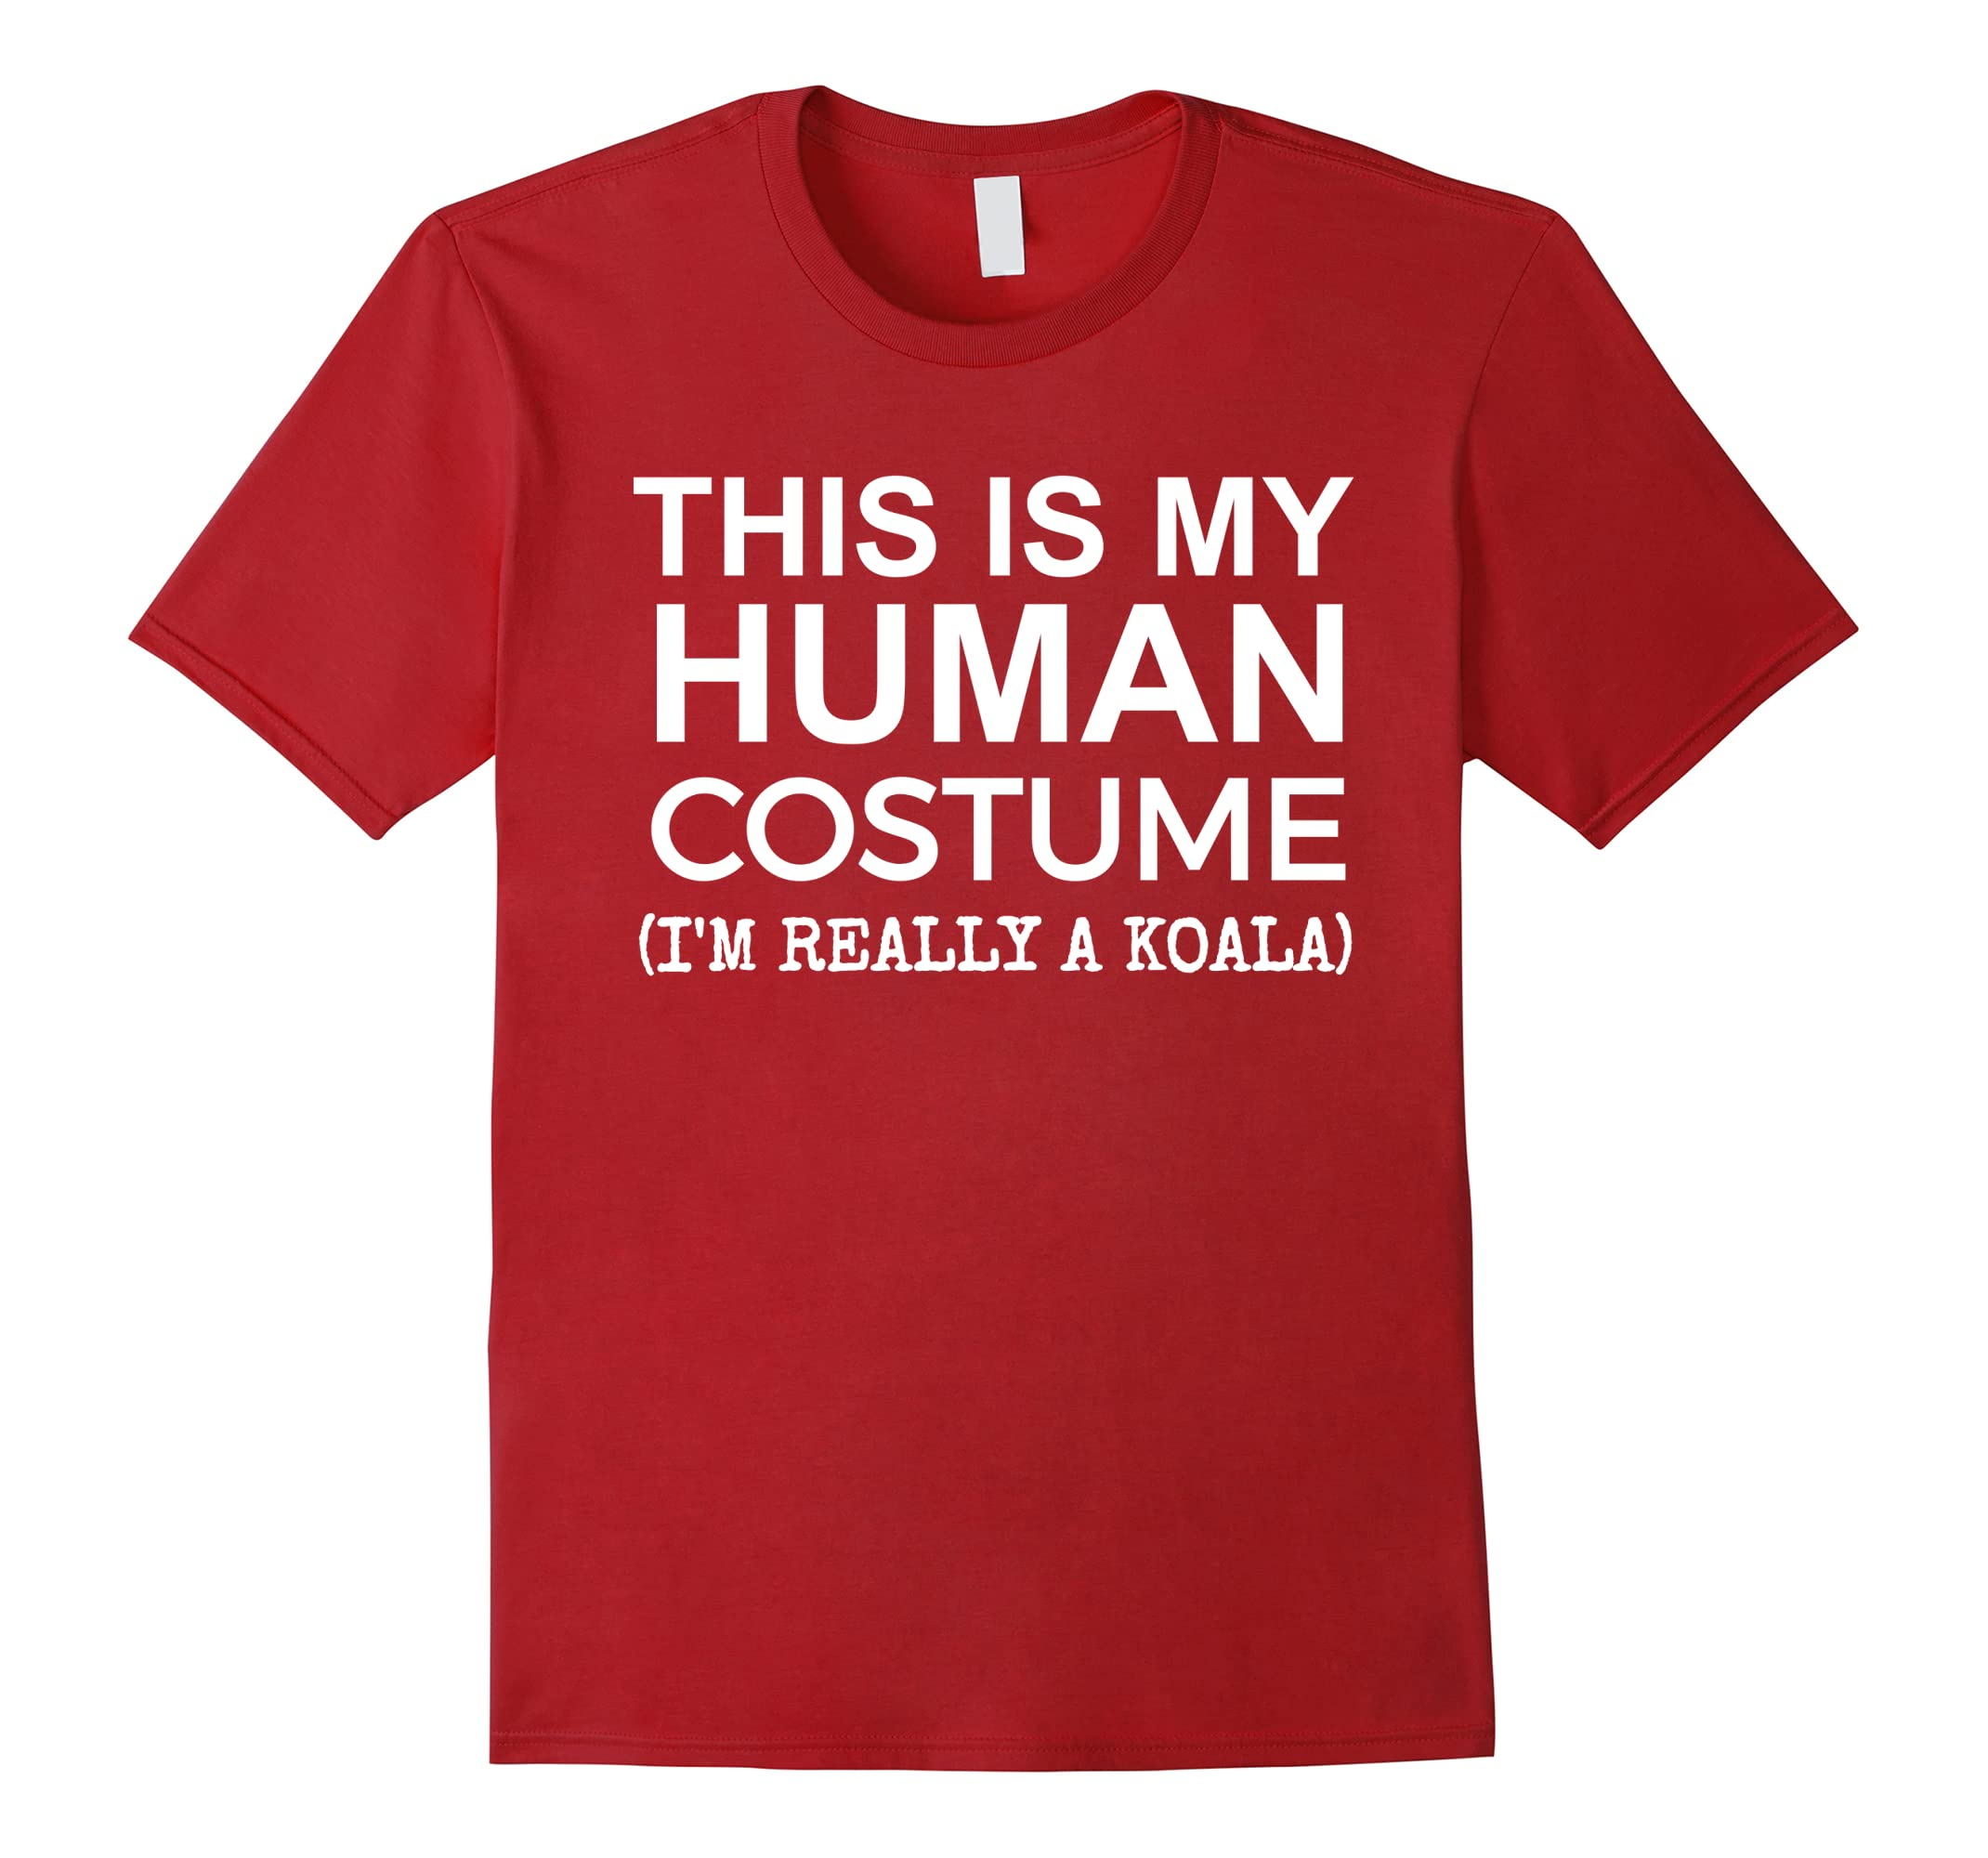 This is My Human Costume, Really a Koala Funny T-shirt-ah my shirt one gift